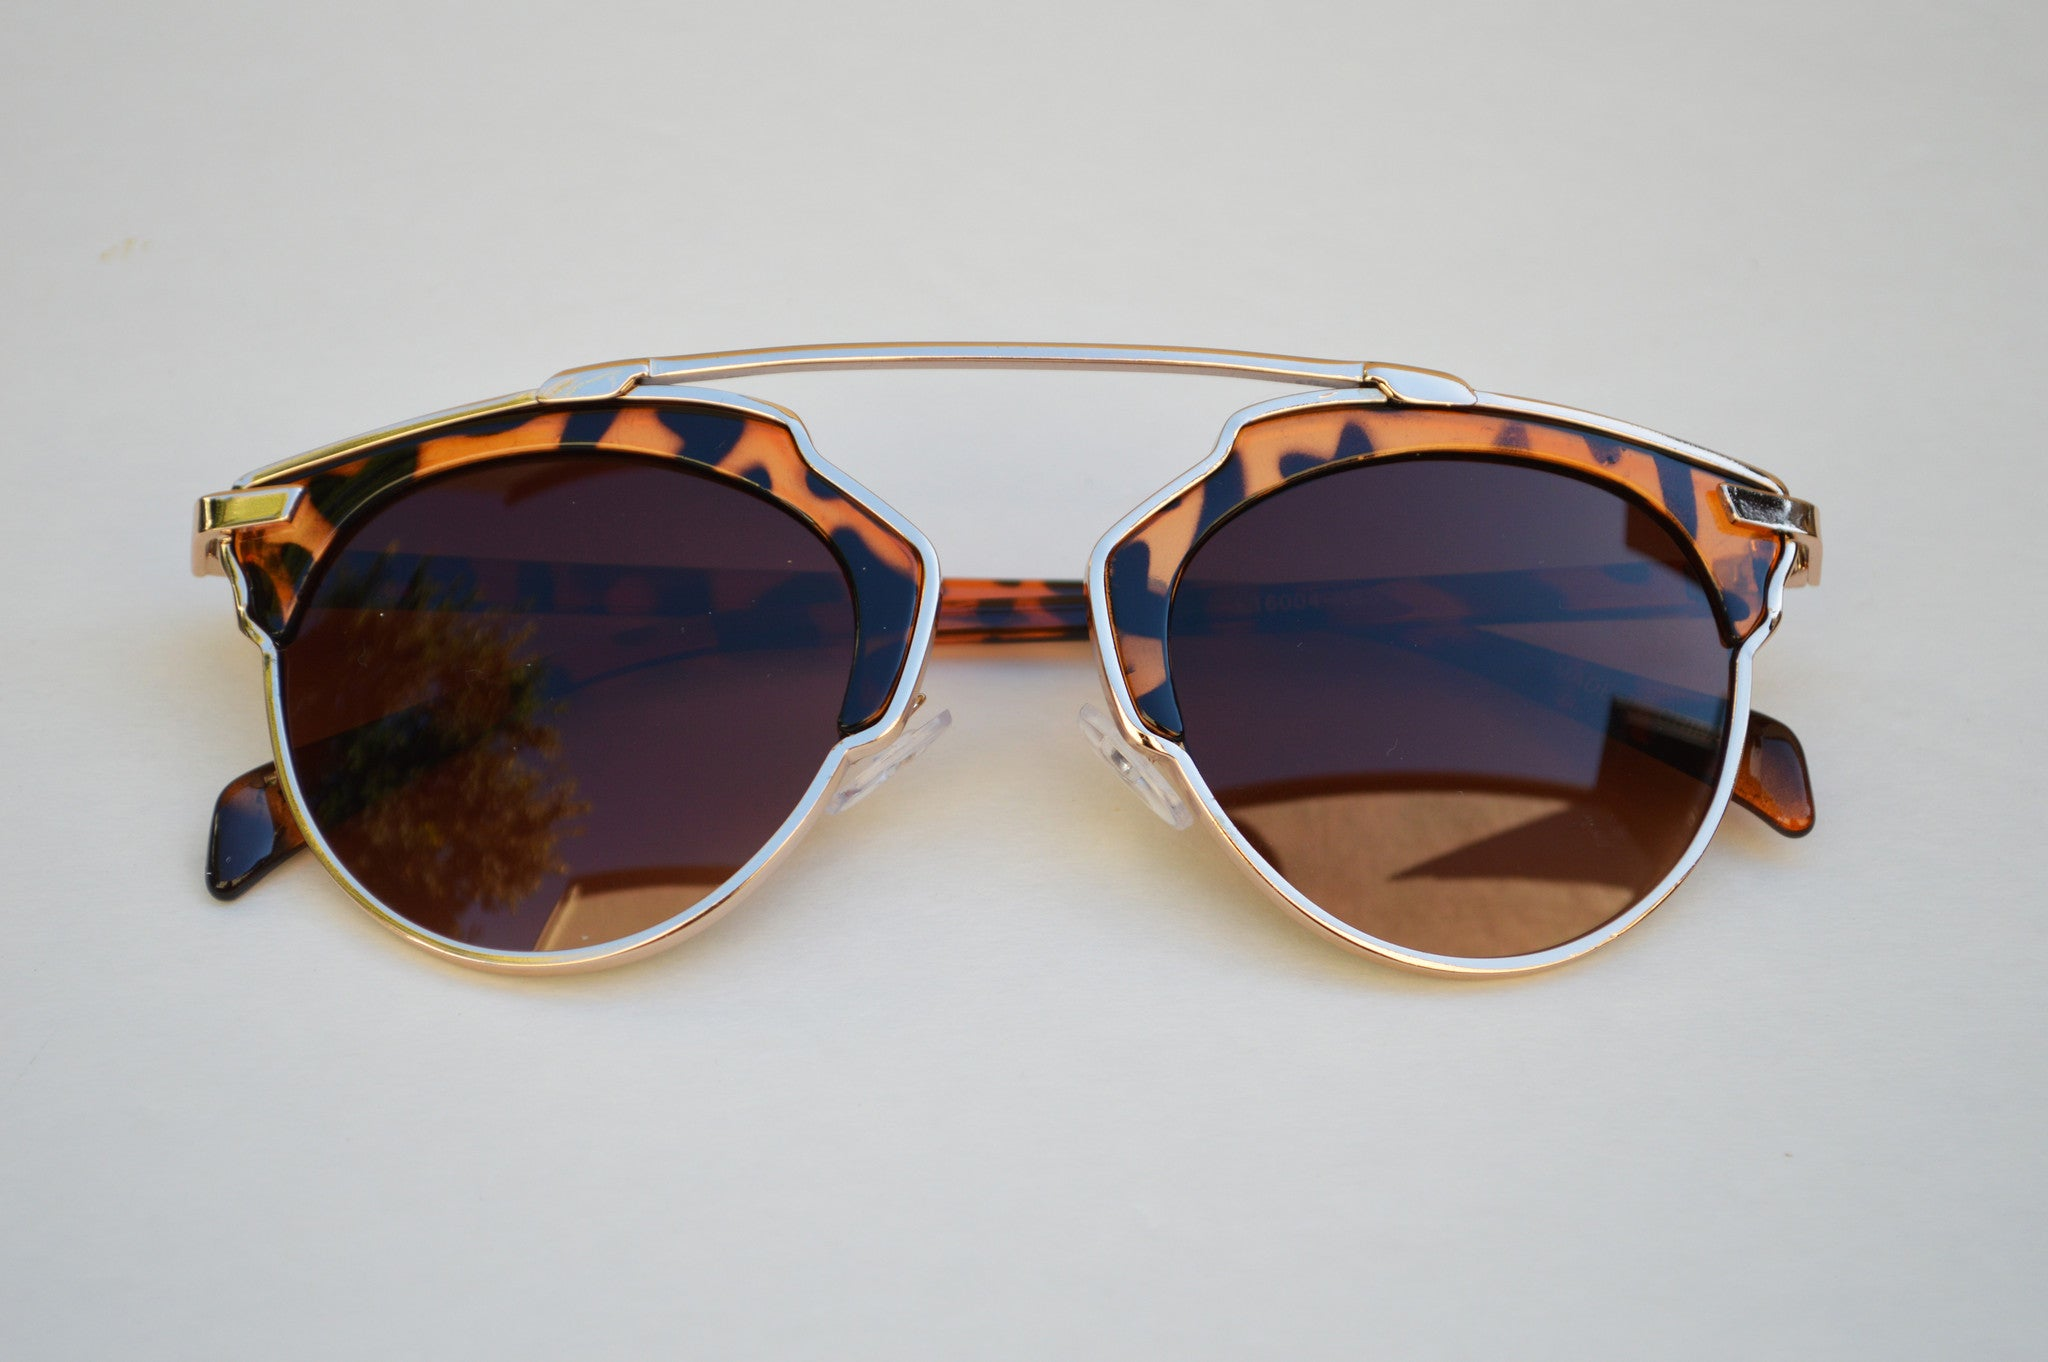 Cat eyes High Fashion Round Metallic Mirrored Sunglasses tortoise